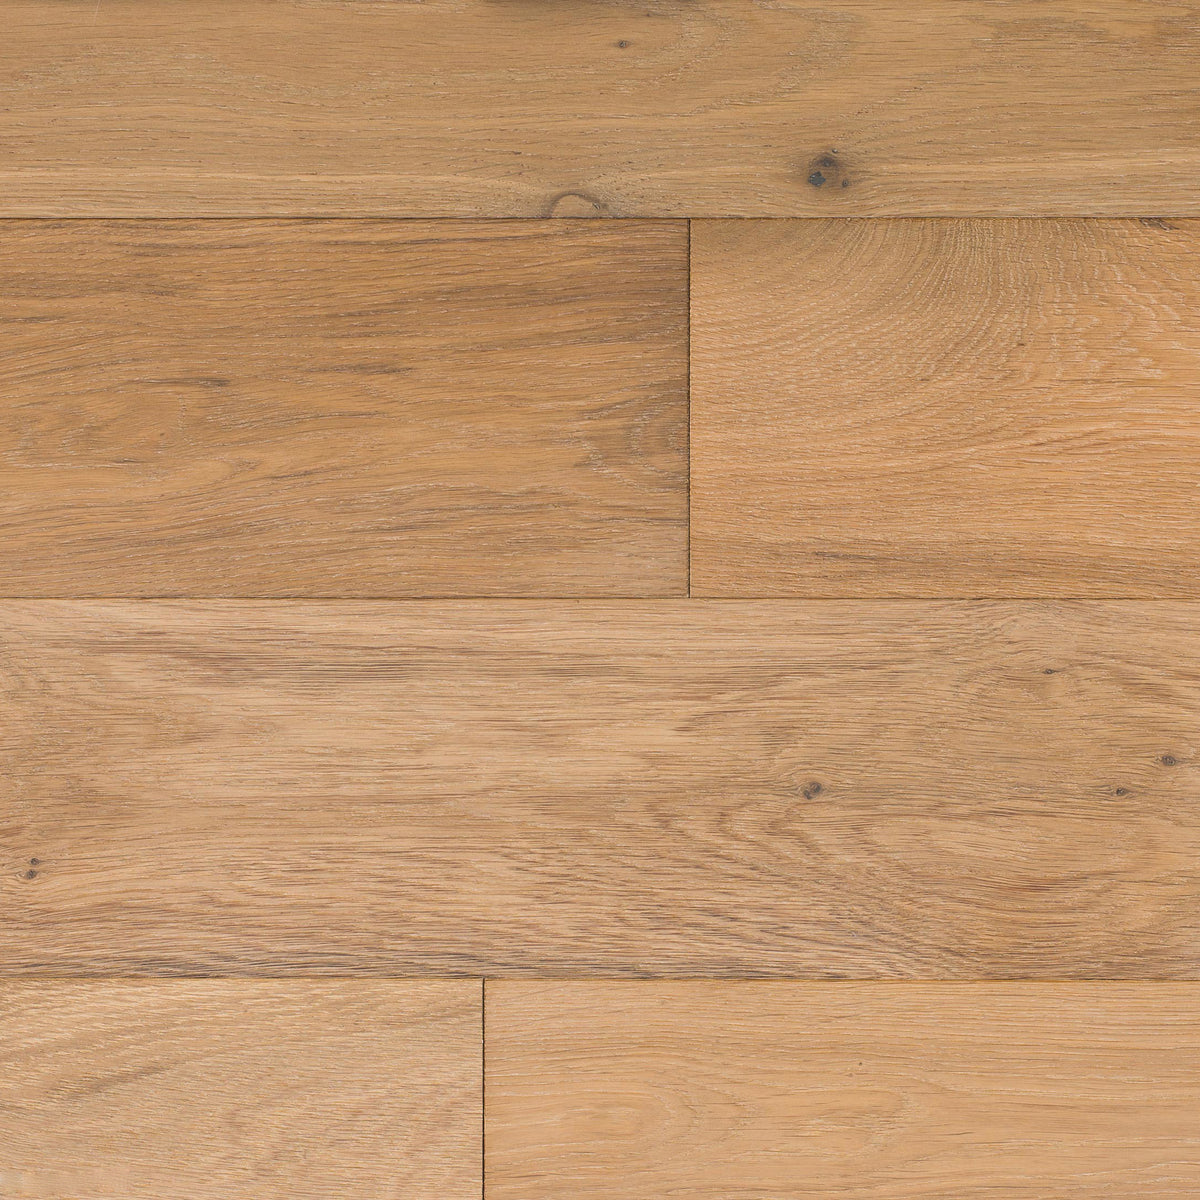 Naturally Aged Flooring - Royal Collection- Hand Scraped Maple Engineered Hardwood - Cliffside